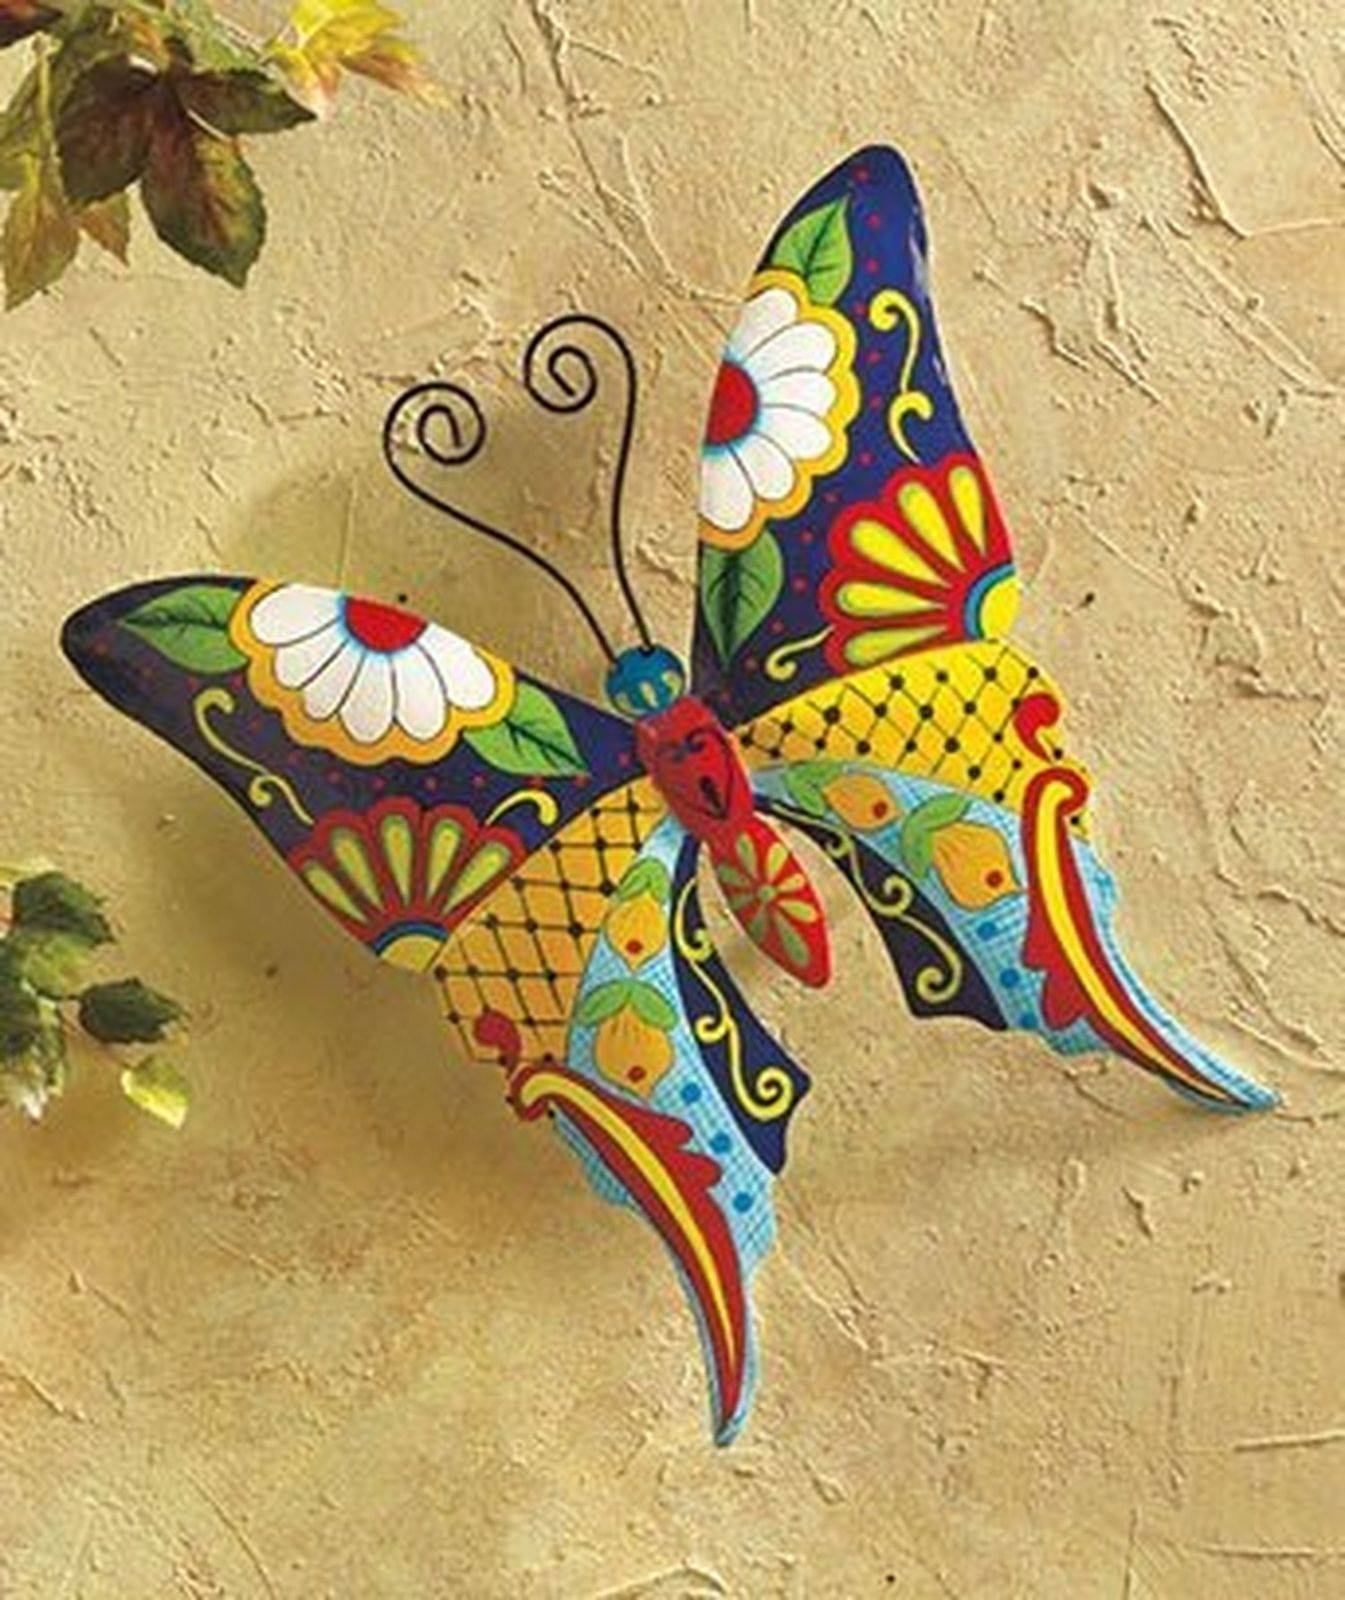 Butterfly Metal Wall Art Garden Mexican Talavera Style Colorful With Regard To Most Up To Date Mexican Metal Yard Wall Art (View 6 of 30)